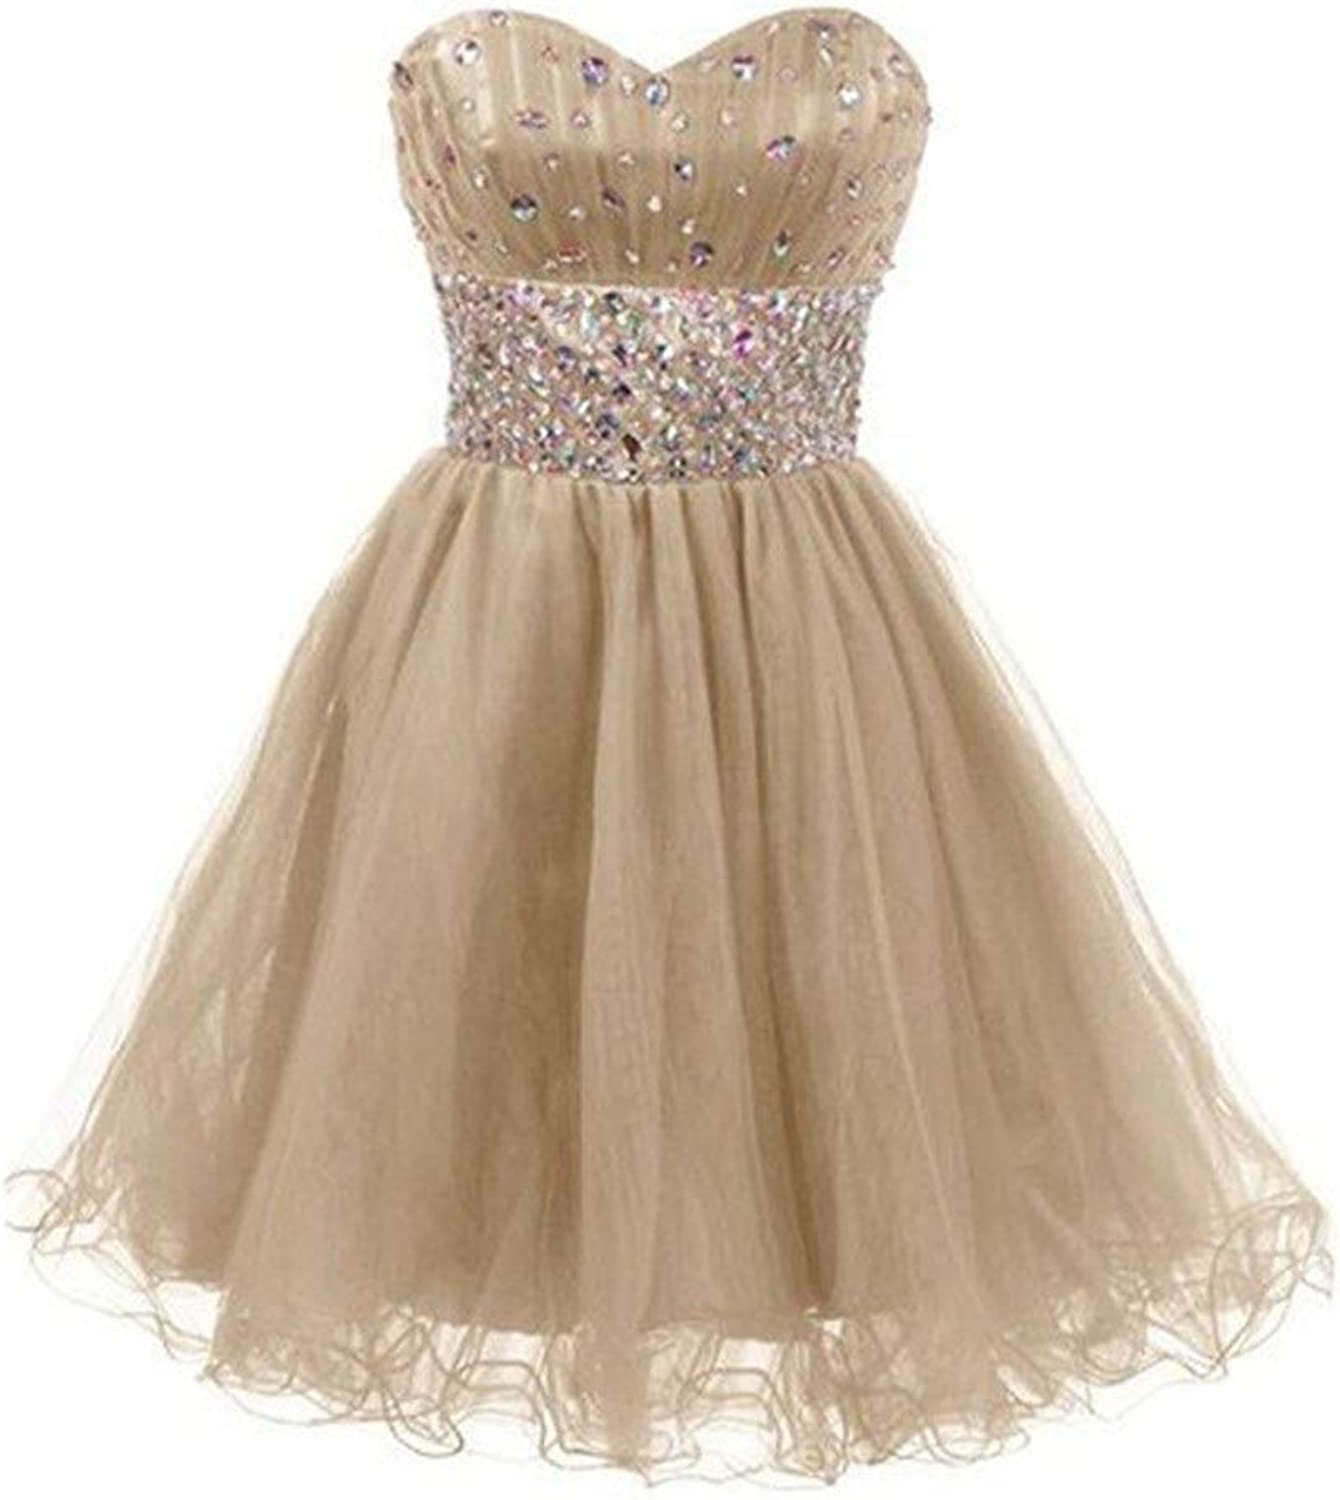 Bridesmaid Dress Women's Tube Top Beads Vintage Collection Small Dress Short Dress Sexy Dress for Formal Prom (color   Champagne, Size   US12)